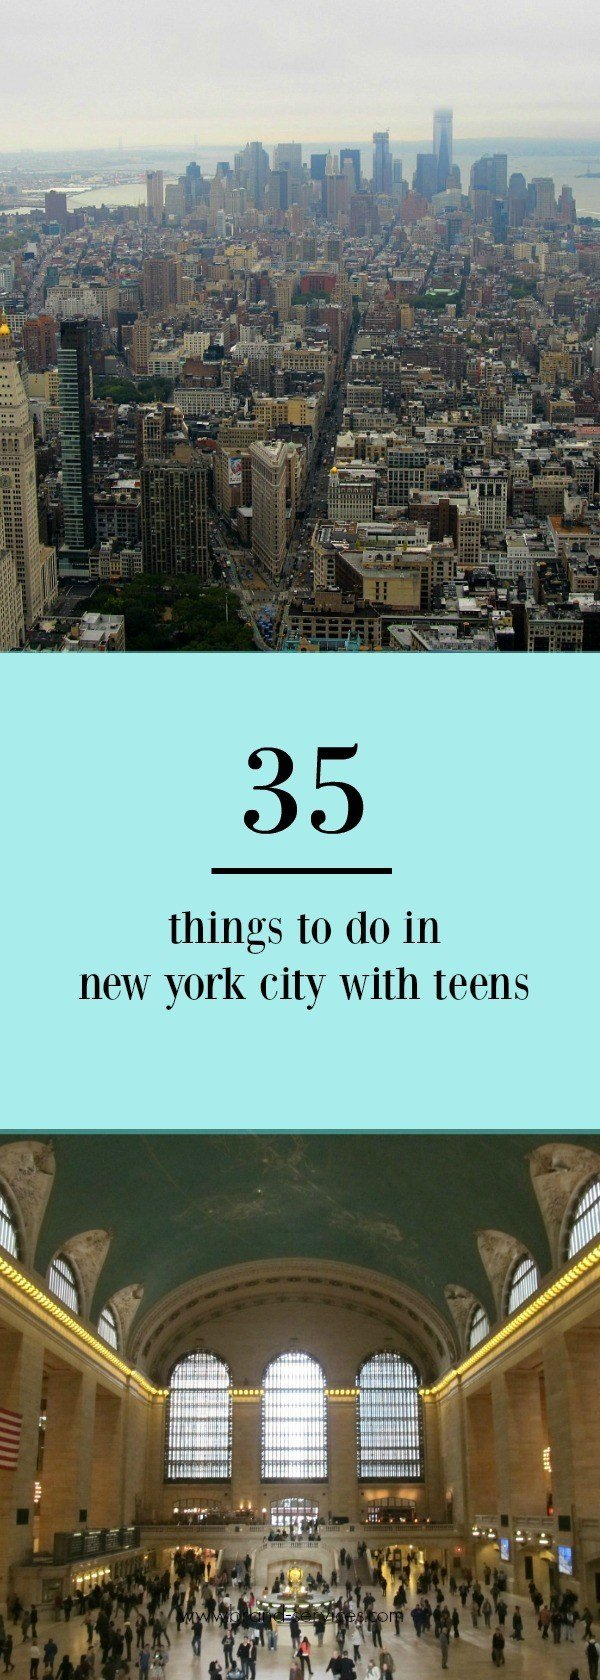 Planning a trip to NYC but don't know where to start? Check out our list of 35 Things to do in New York City with teens to help you get started.